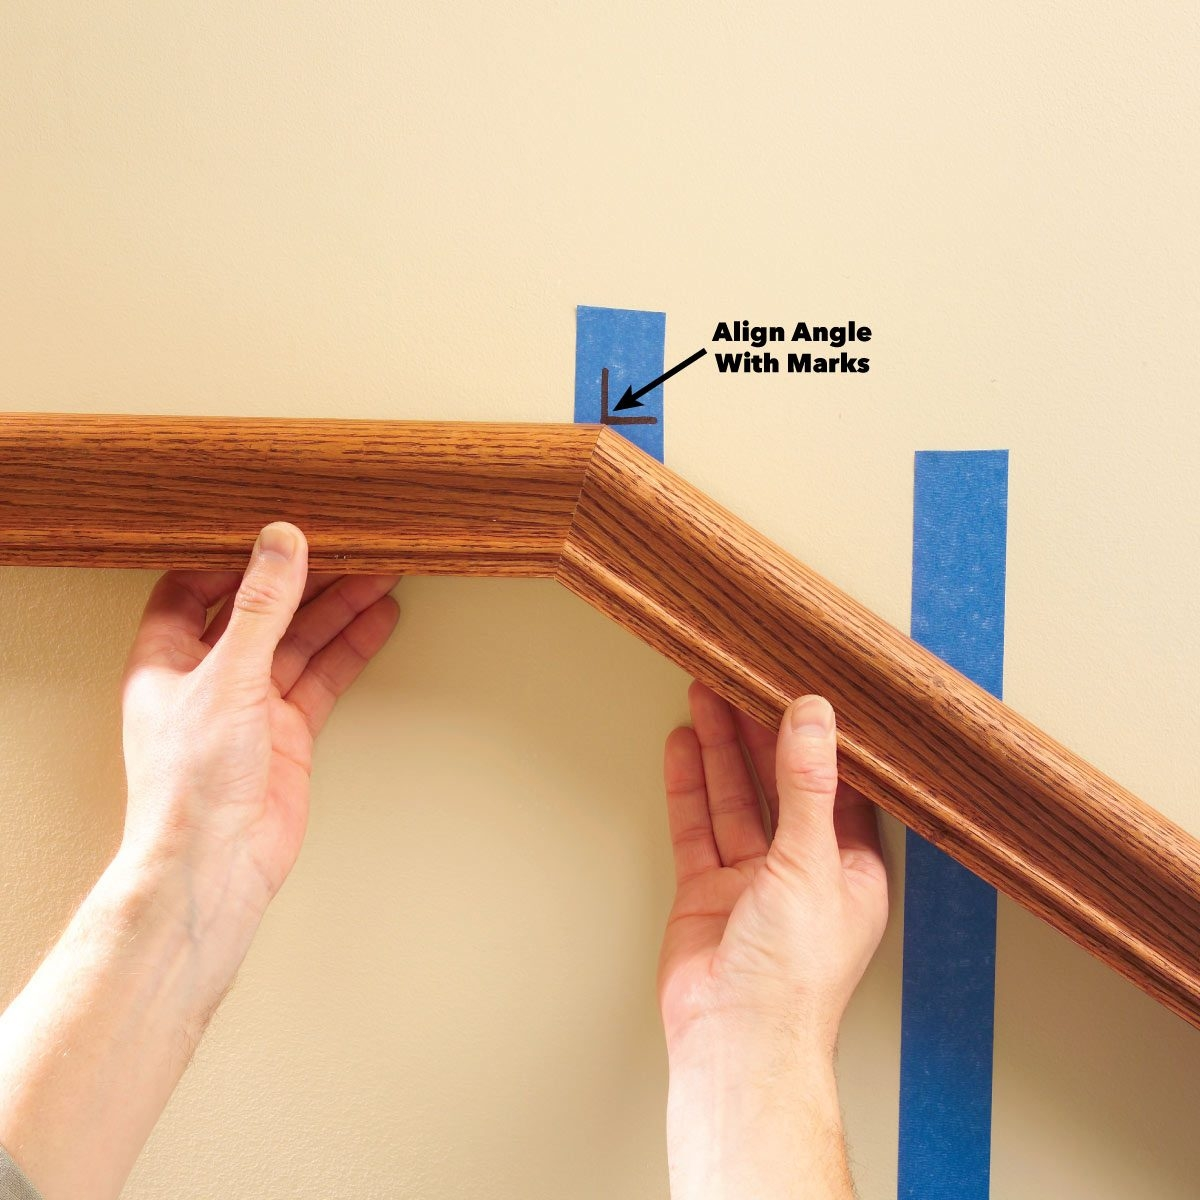 Install A New Stair Handrail | Short Handrail For Stairs | Exterior Handrail Ideas | Deck Railing Ideas | Spiral Staircase | Concrete | Wrought Iron